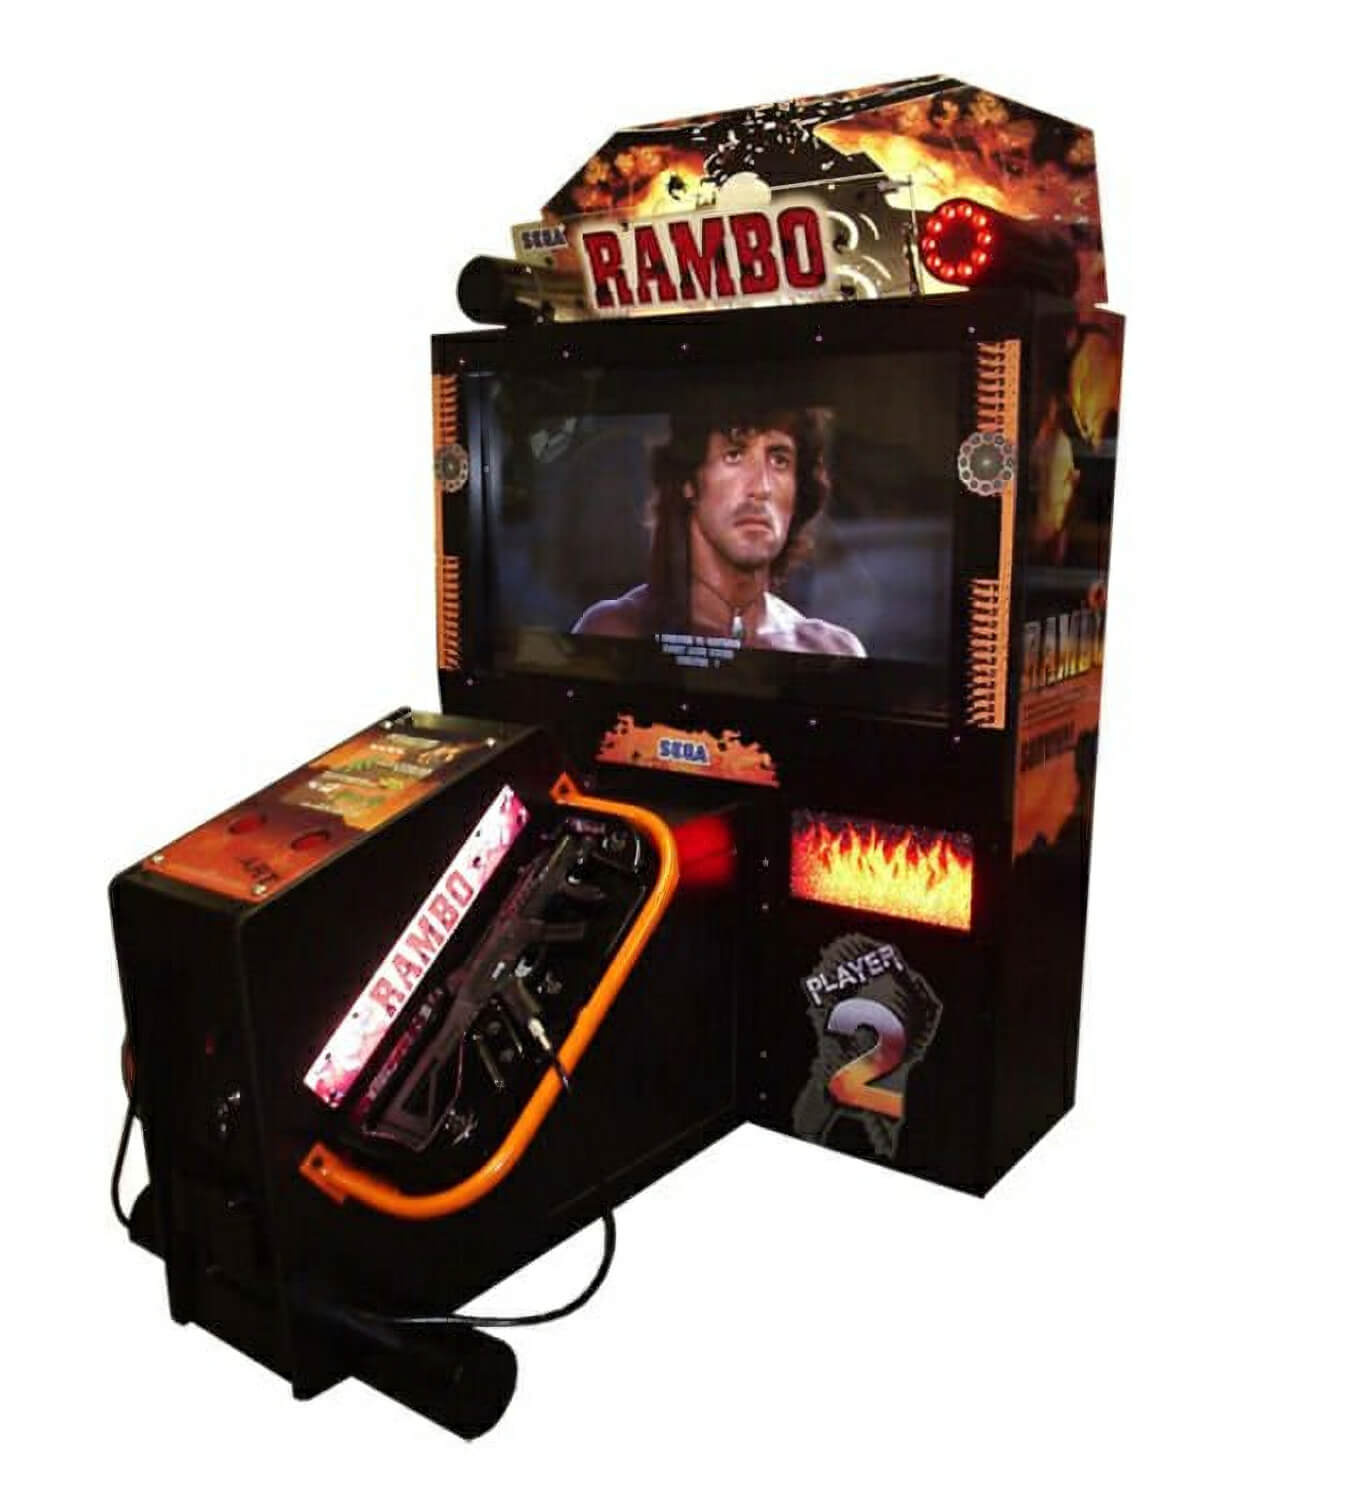 Sega Rambo Deluxe Arcade Machine Liberty Games